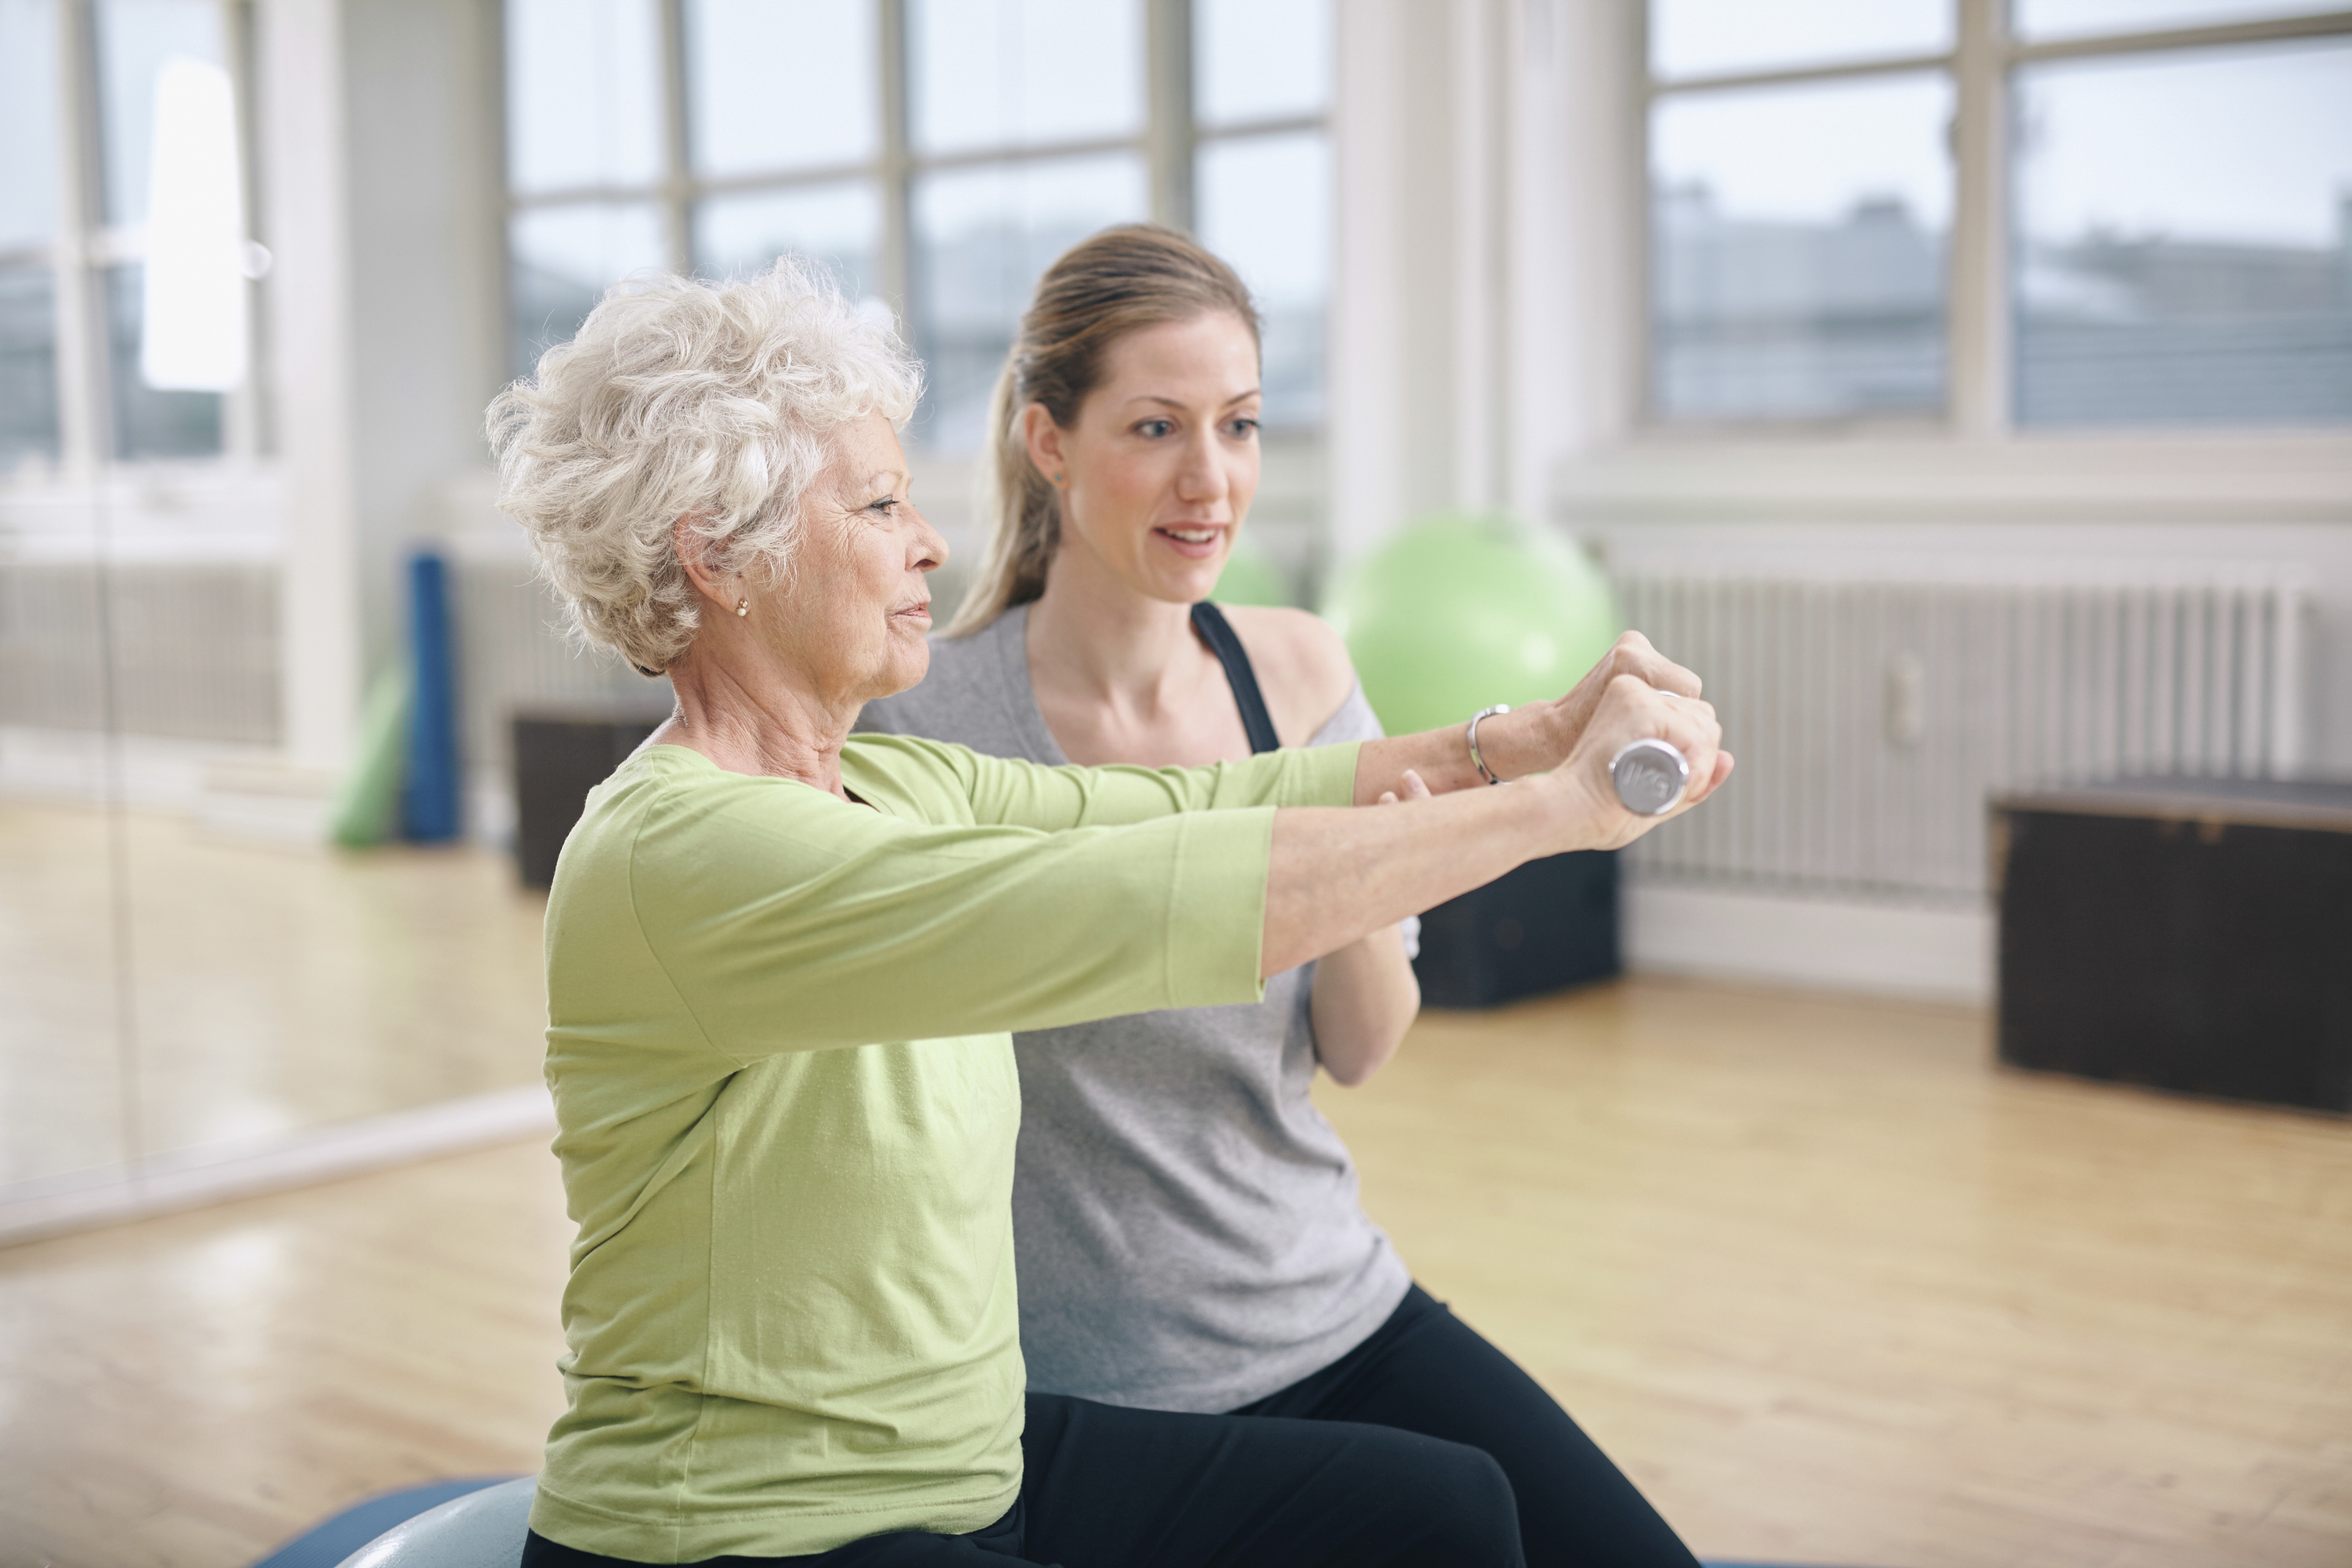 Aging gracefully: Caring for your bones as you age